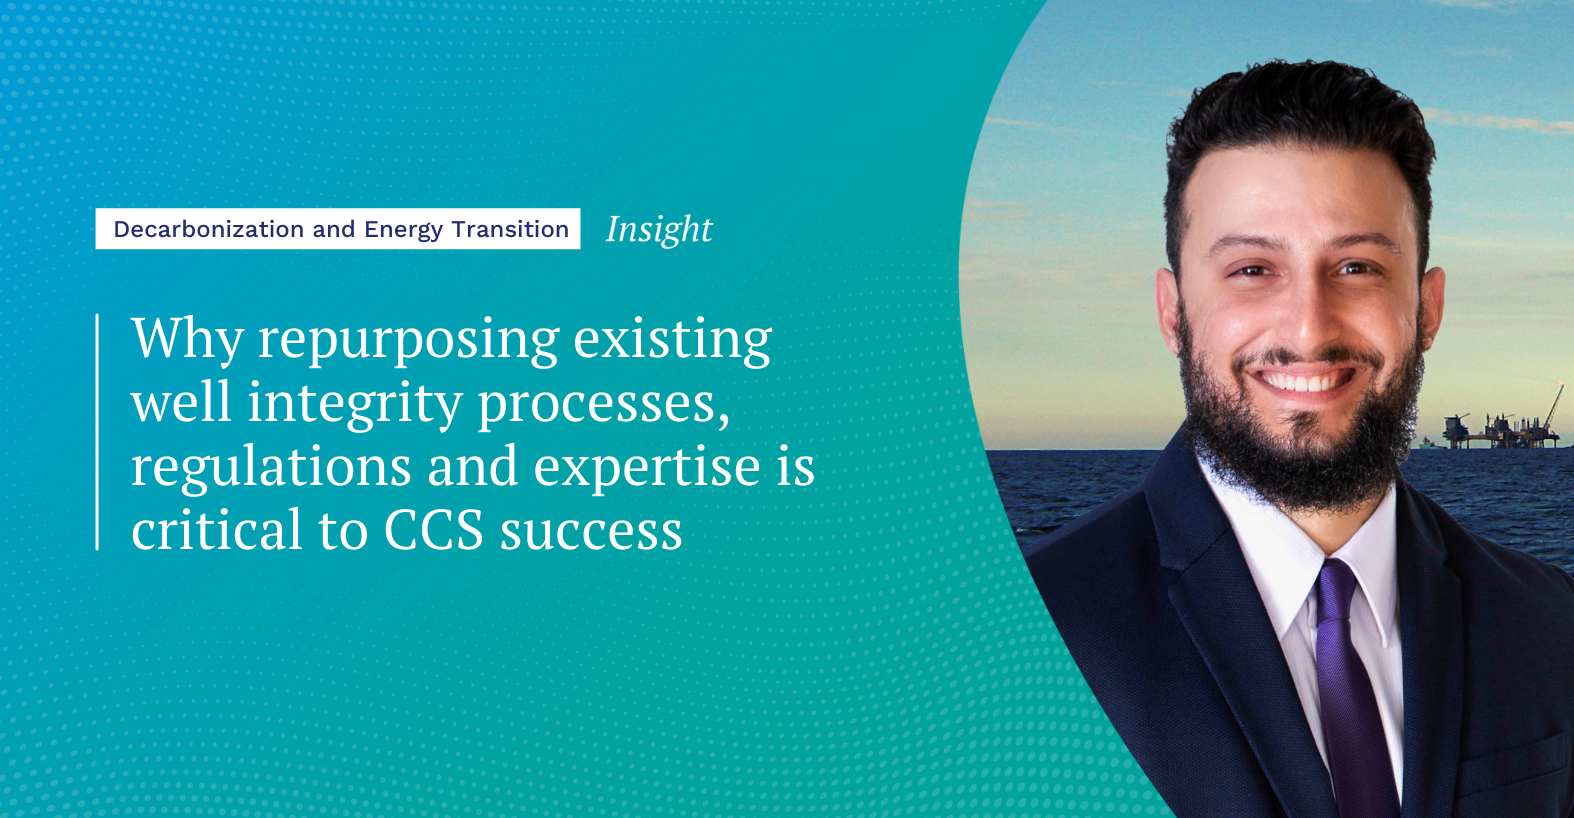 Why repurposing existing well integrity processes, regulations and expertise is critical to CCS success